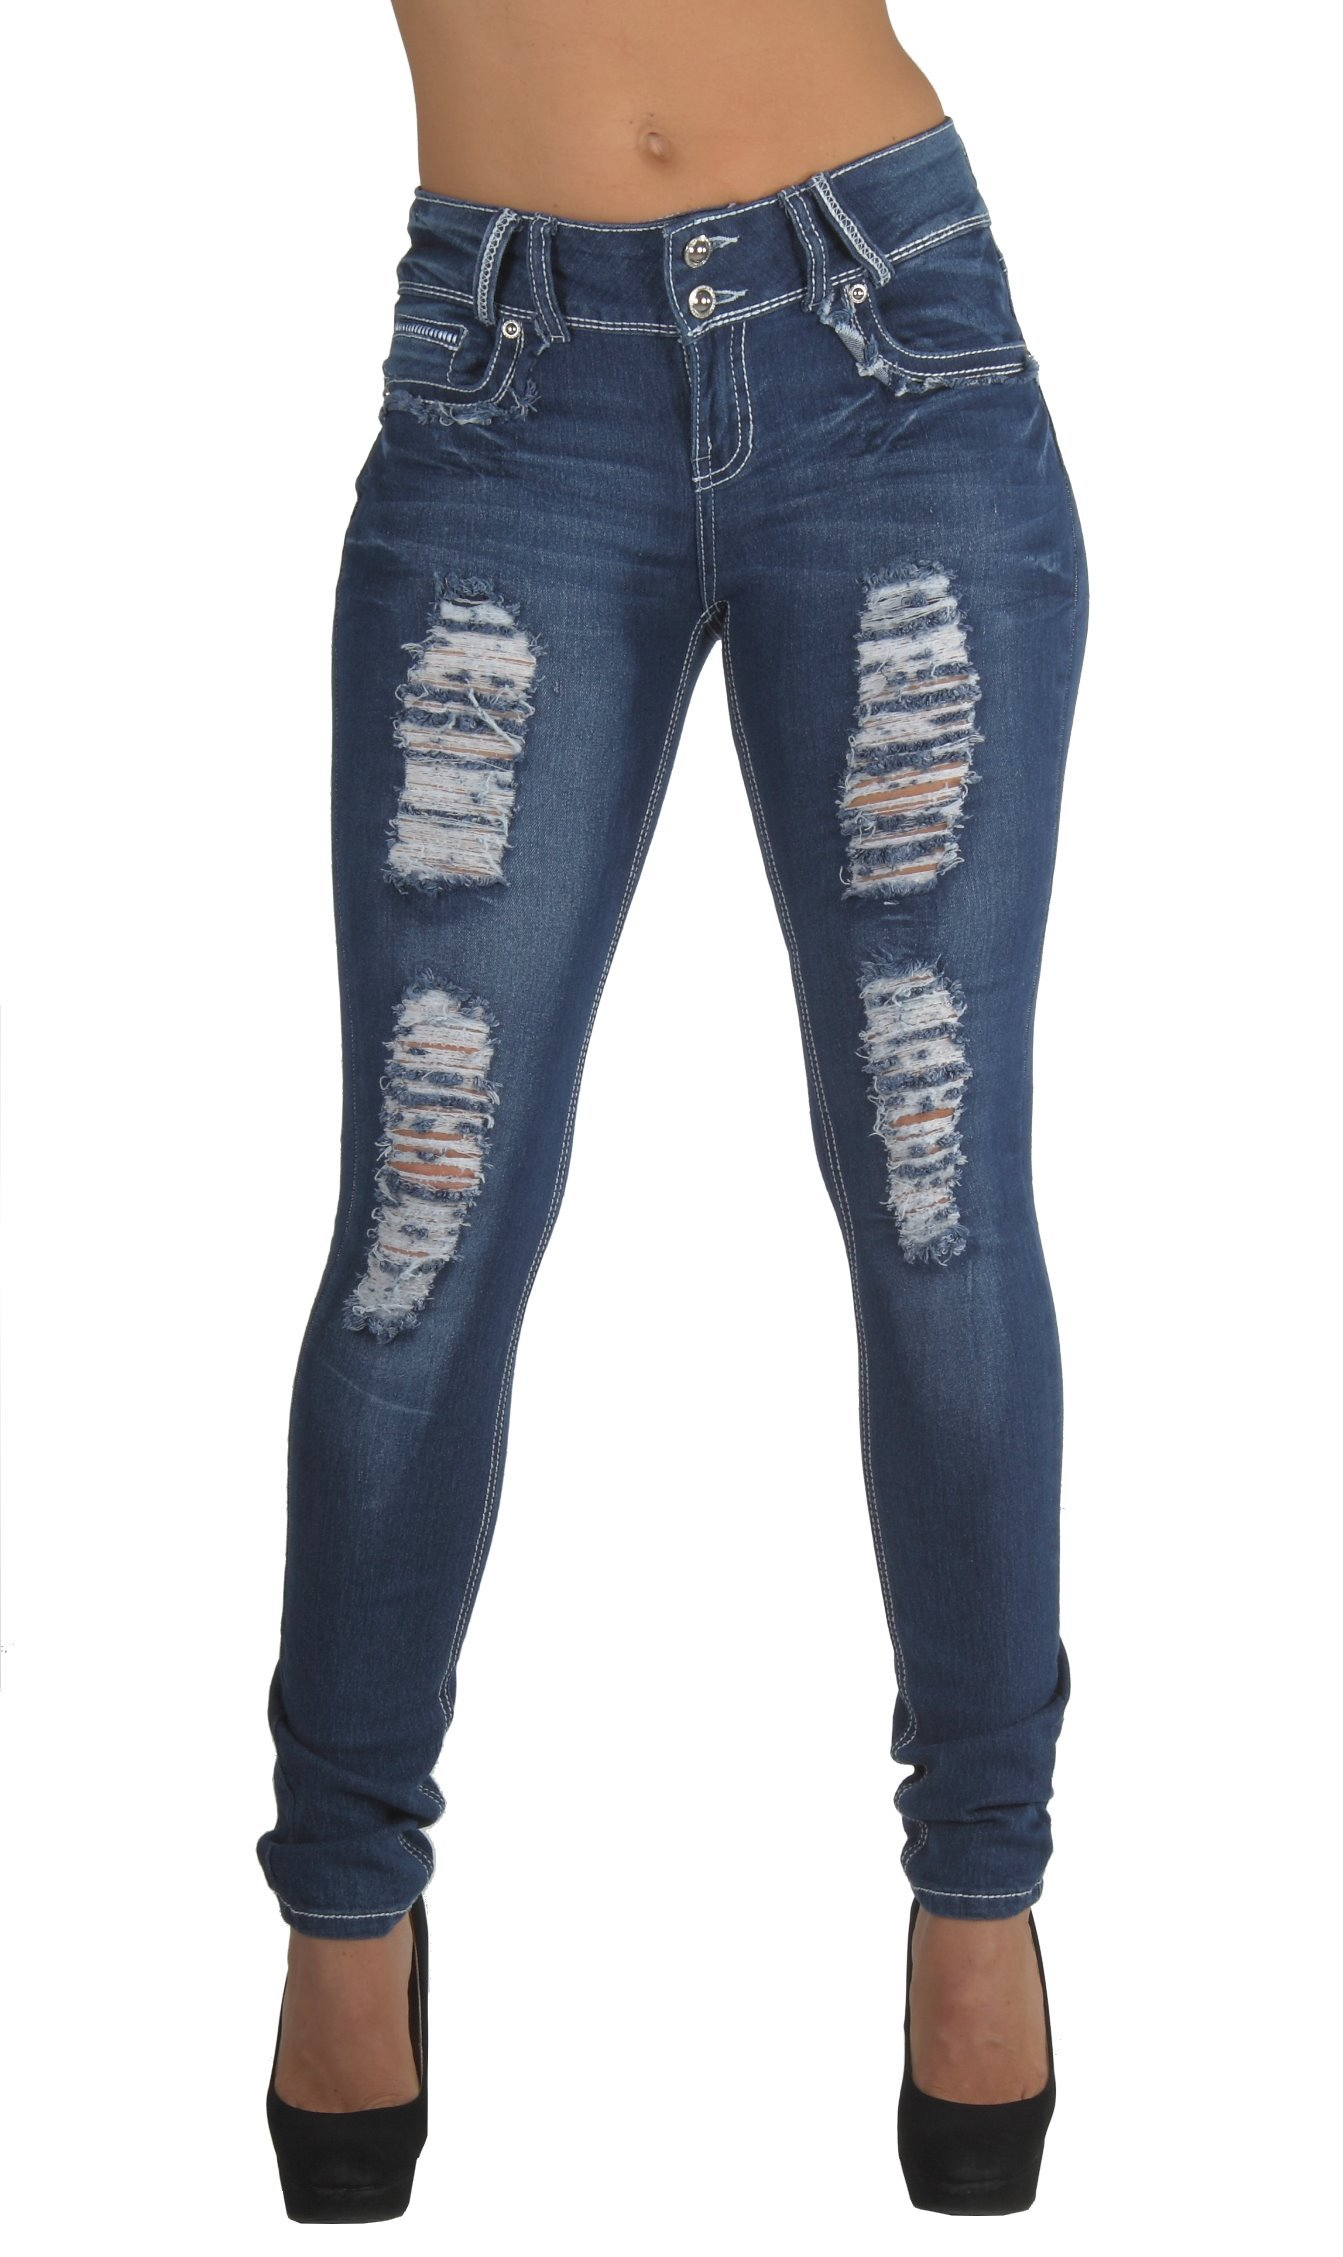 Style N596R-SK– Classic Design, Ripped Distressed, Destroyed Skinny Jeans in Washed Blue Size 7